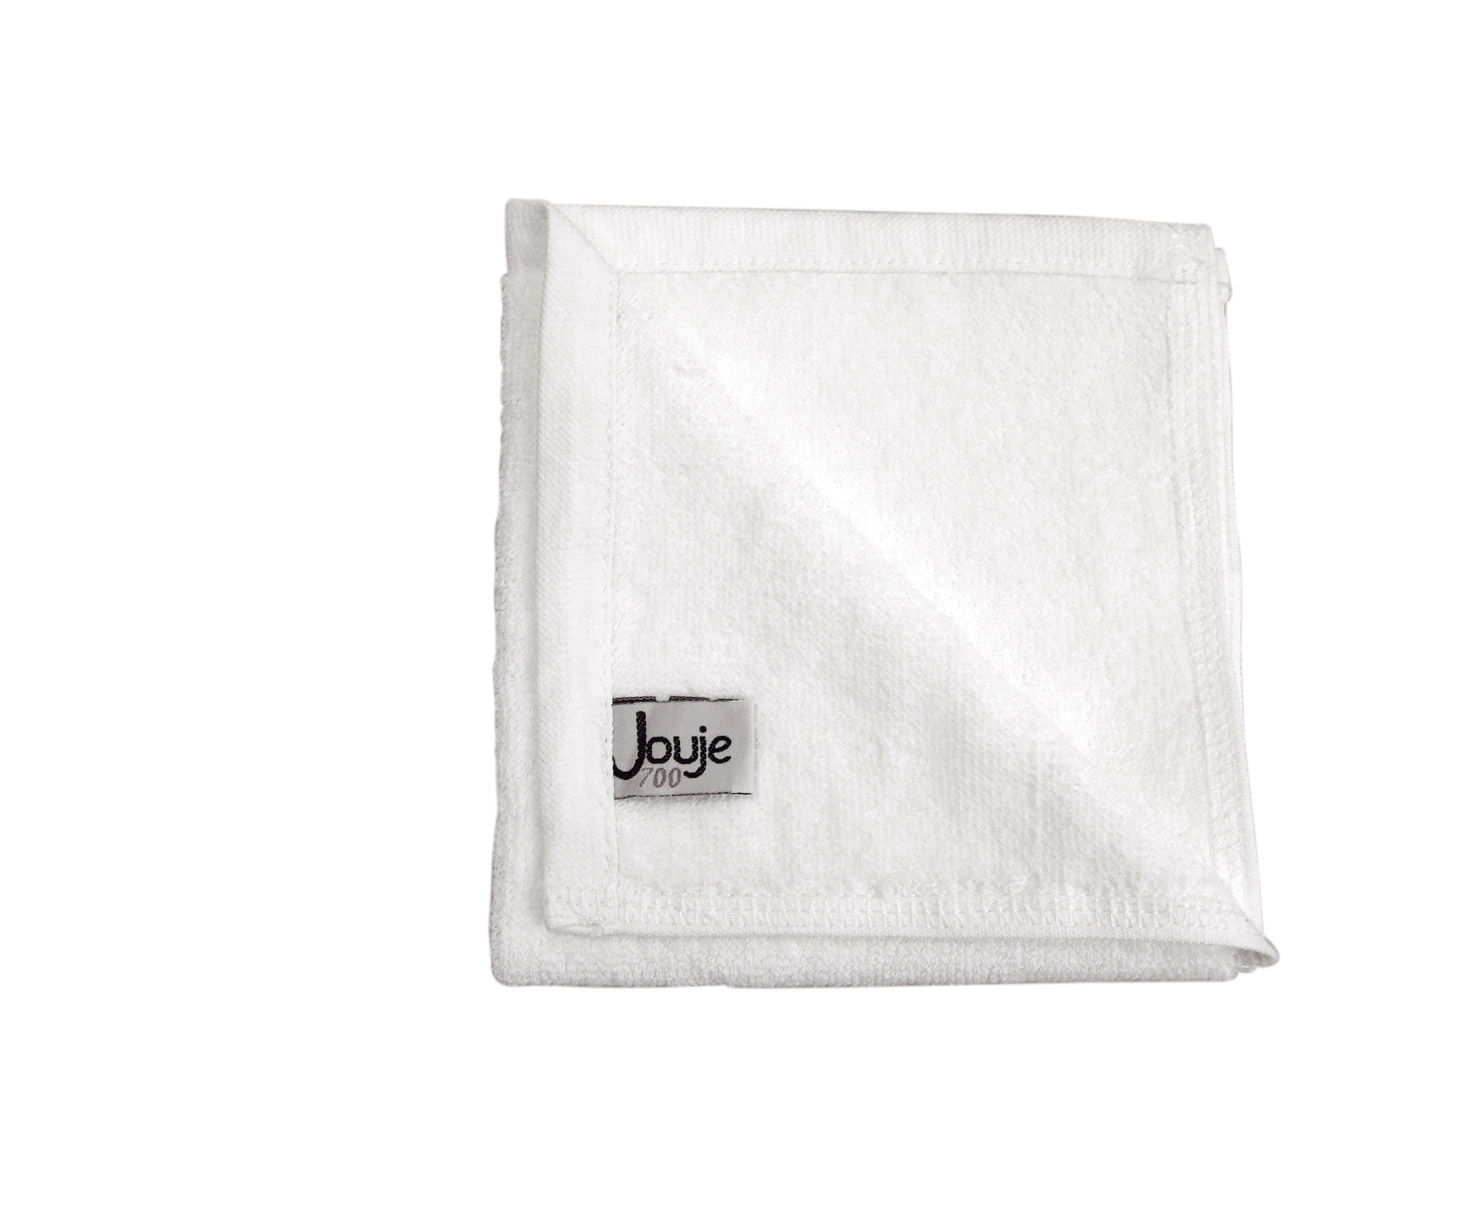 JOUGE700 Face Cloth 30cmx30cm PACK OF 50